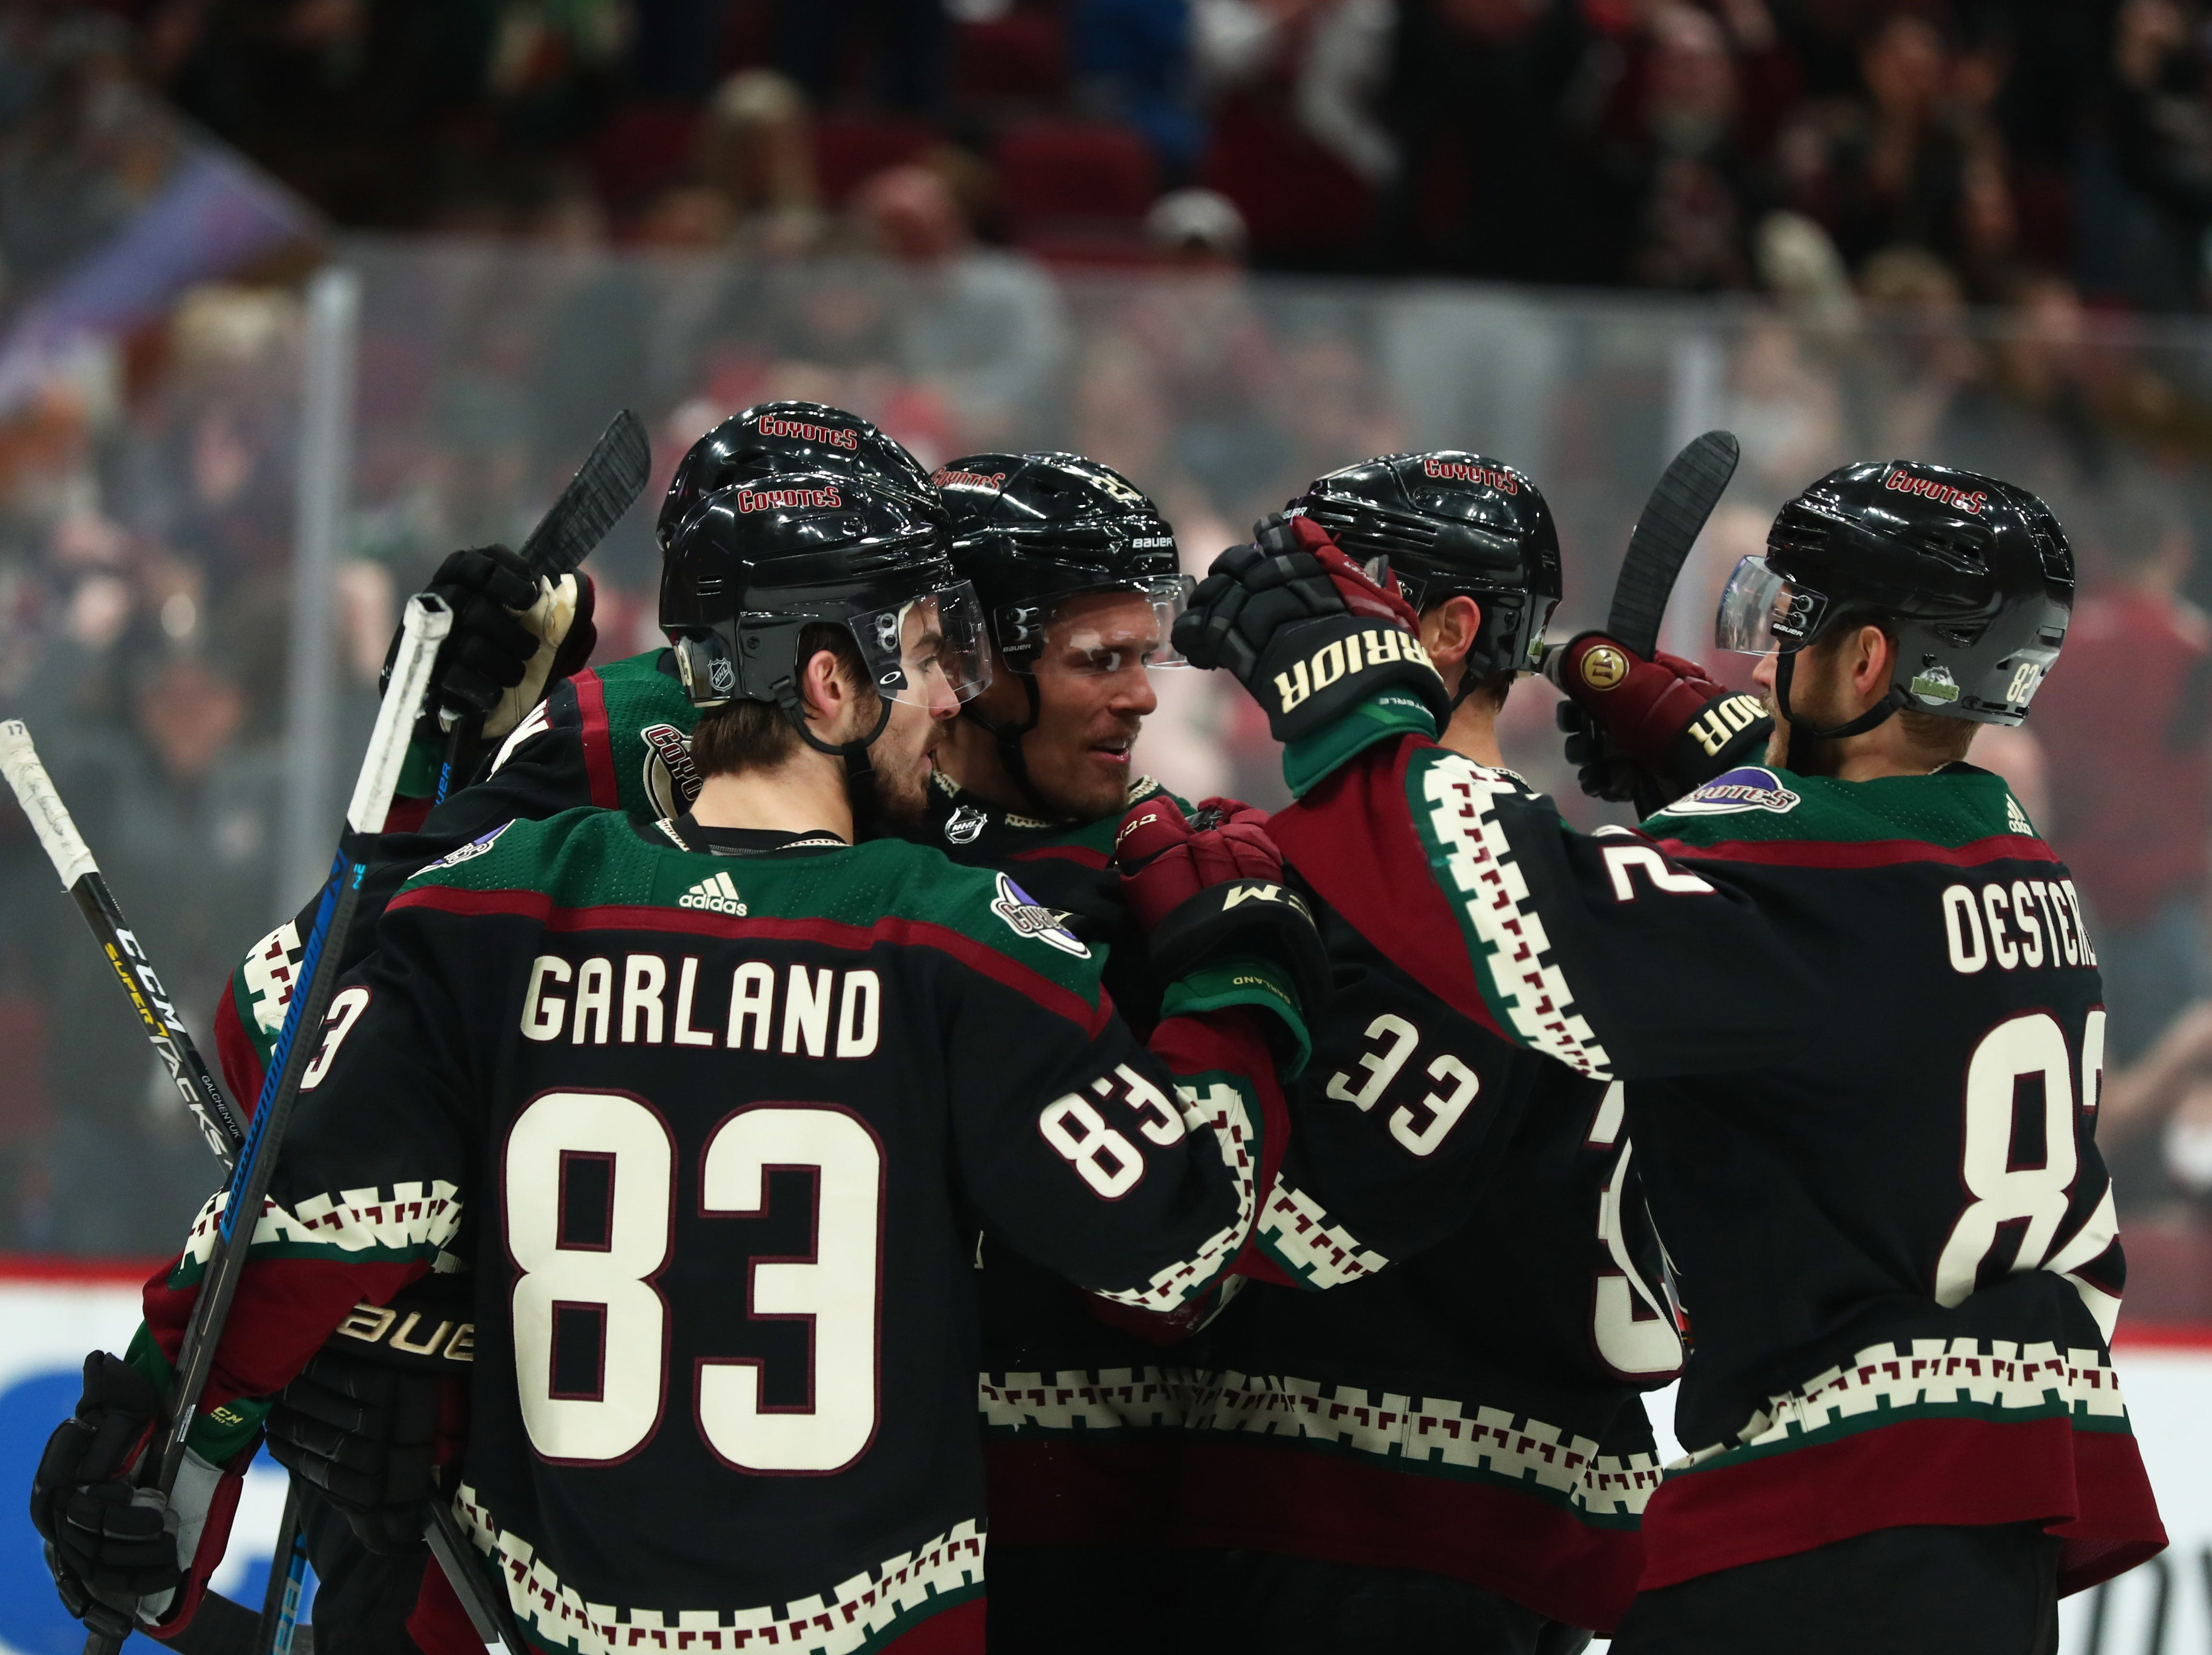 Apr 6, 2019; Glendale, AZ, USA; Arizona Coyotes players congratulate center Alex Galchenyuk after scoring a goal against the Winnipeg Jets in the first period at Gila River Arena. Mandatory Credit: Mark J. Rebilas-USA TODAY Sports